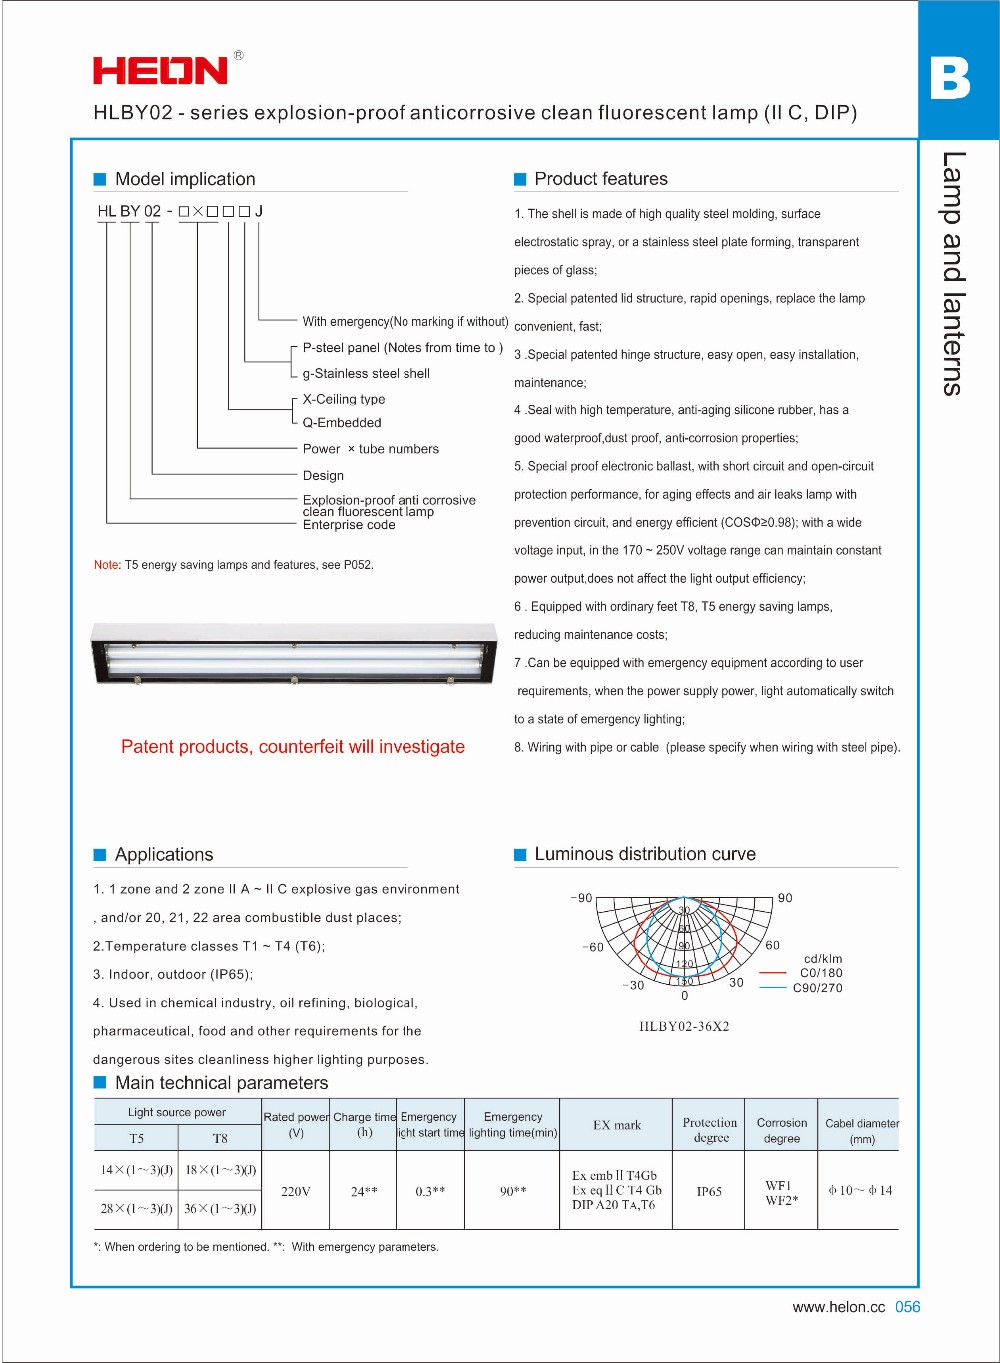 HLBY02-Series explosion & corrosion-proof clean fluorescent lamp